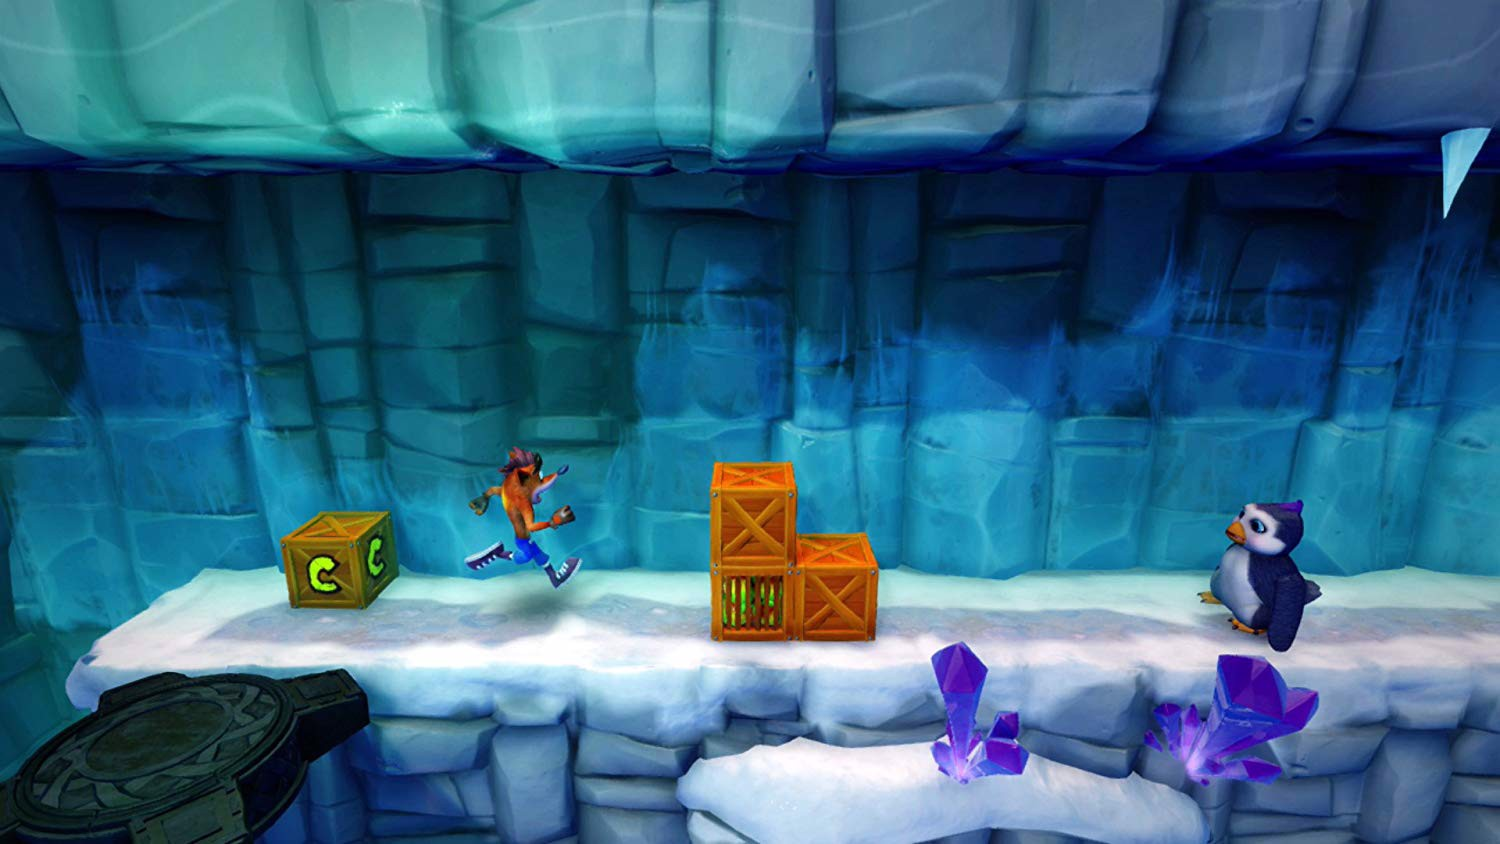 109 - Crash Bandicoot N. Sane Trilog